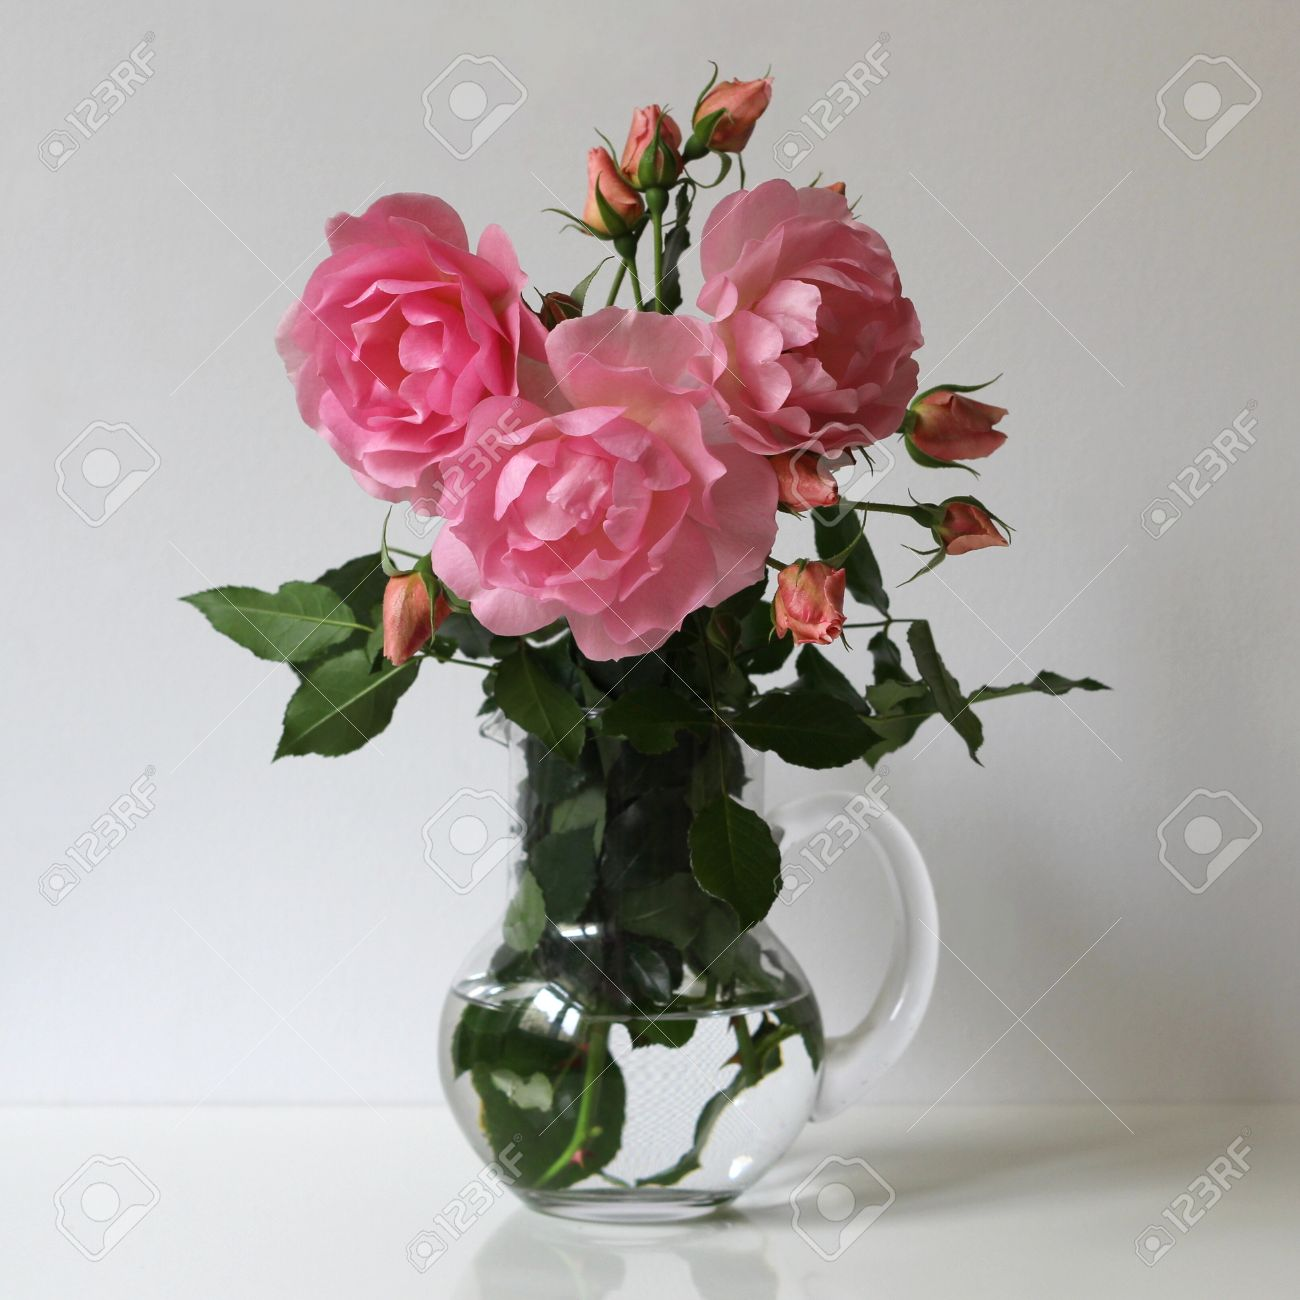 Pink roses in a glass vase on a white background. Floral decoration